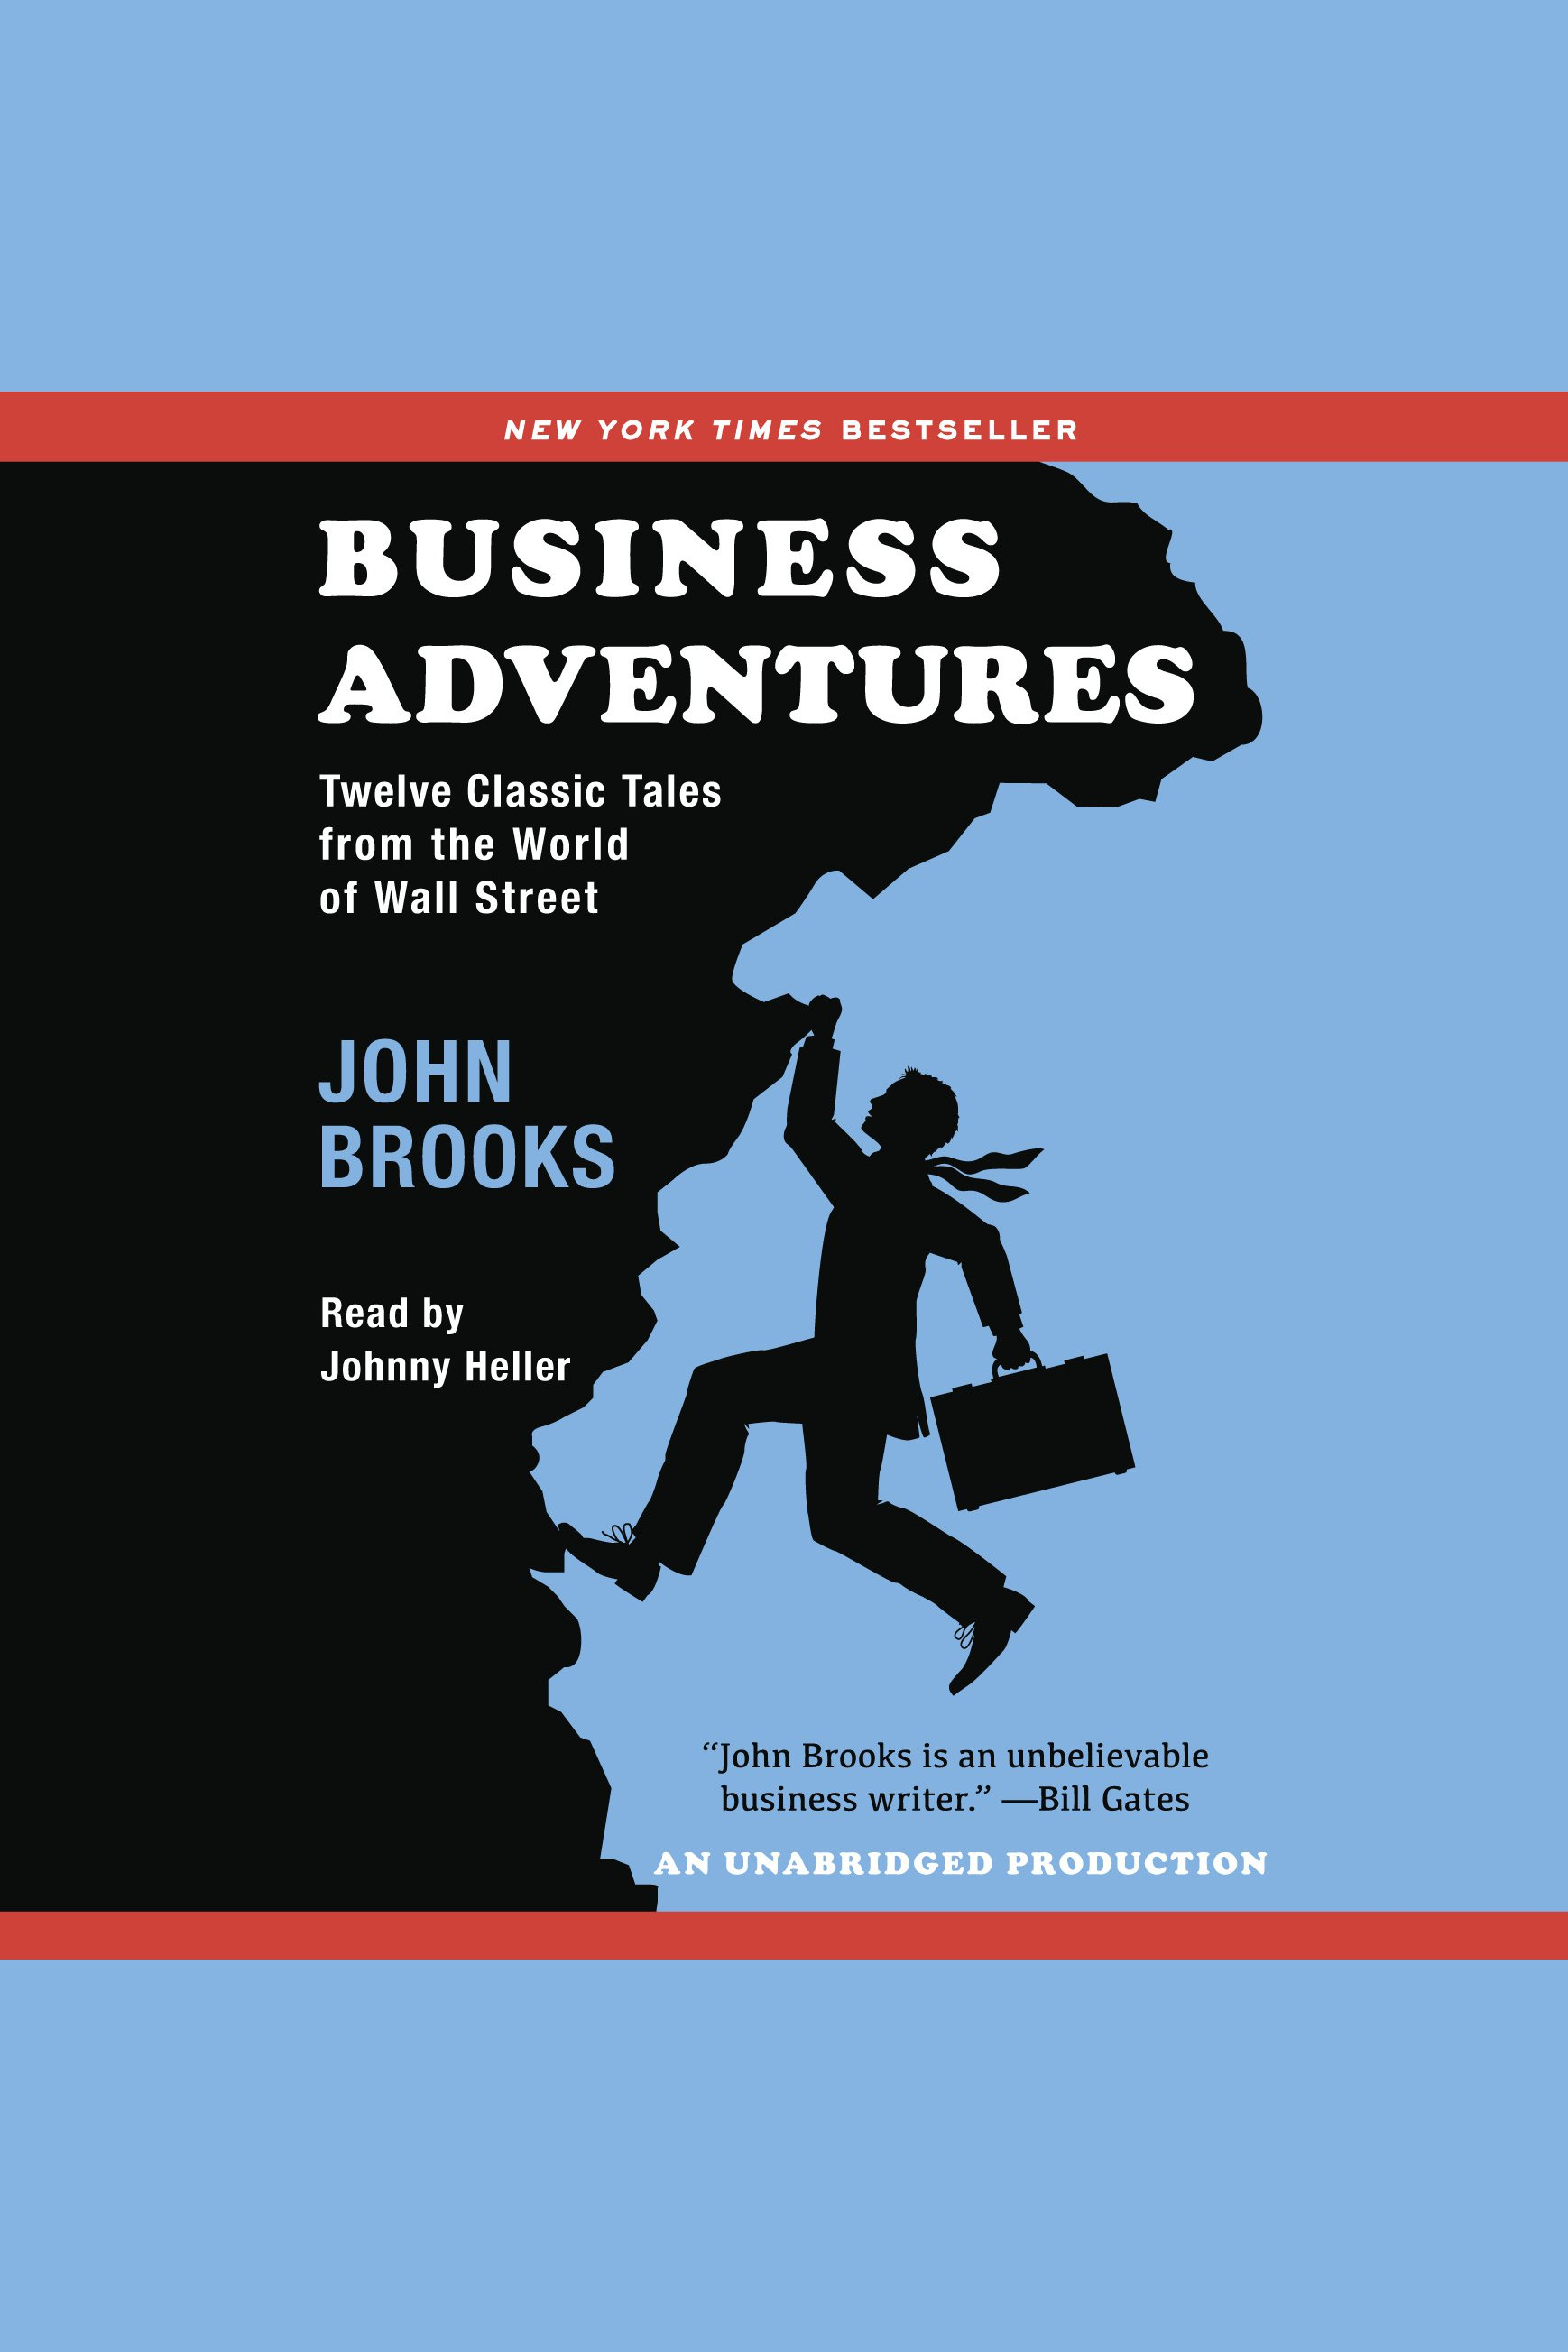 Business adventures twelve classic tales from the world of Wall Street cover image